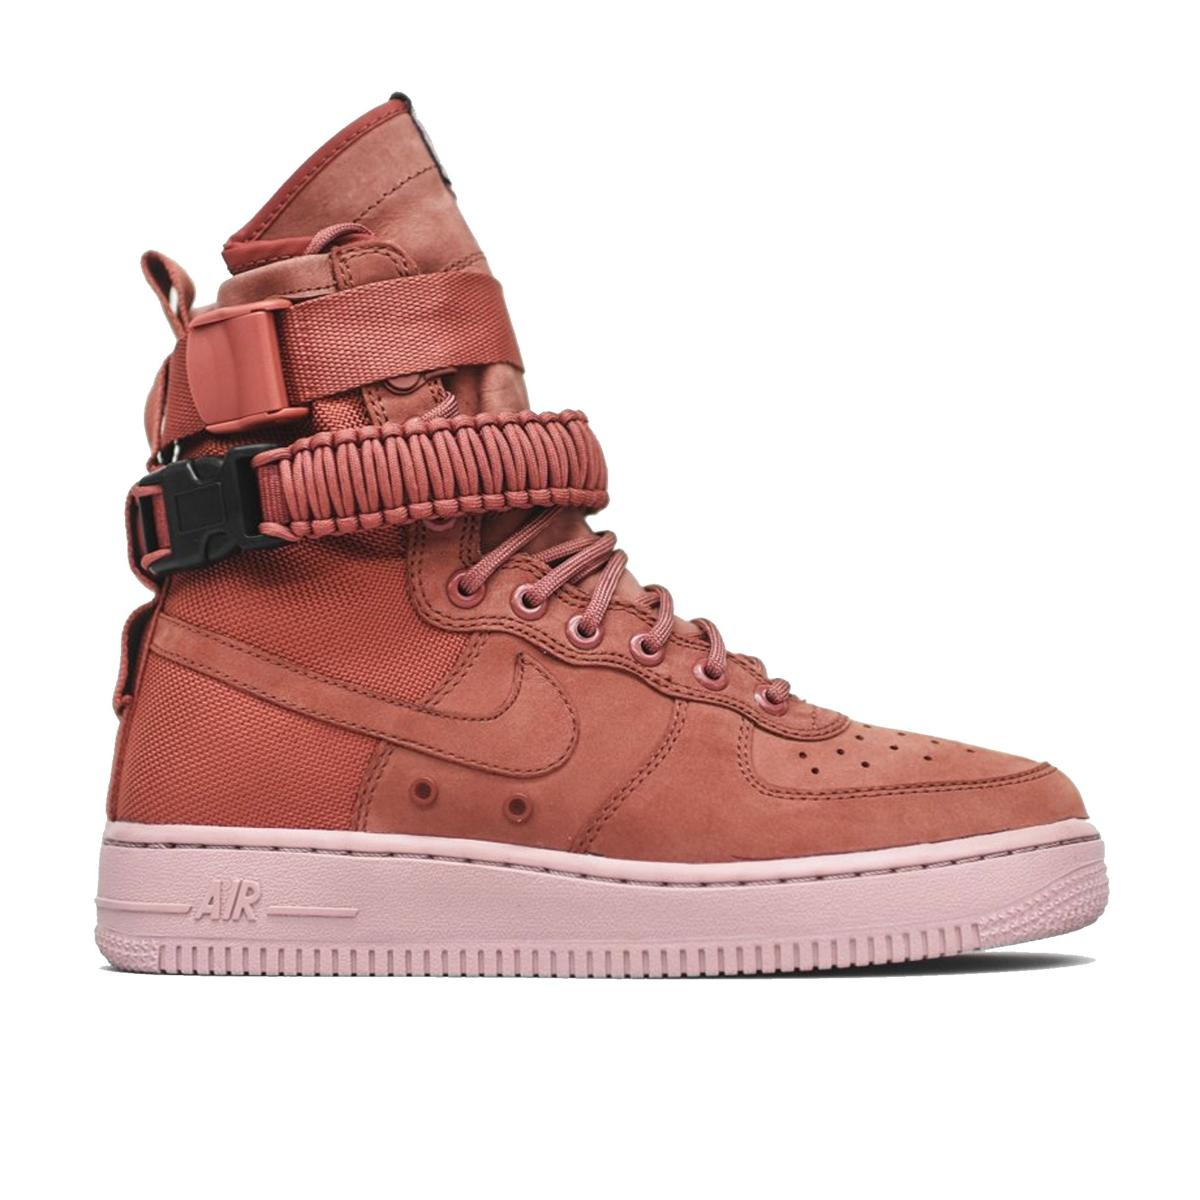 Scarpe Nike SF Air Force 1 Dusty Peach